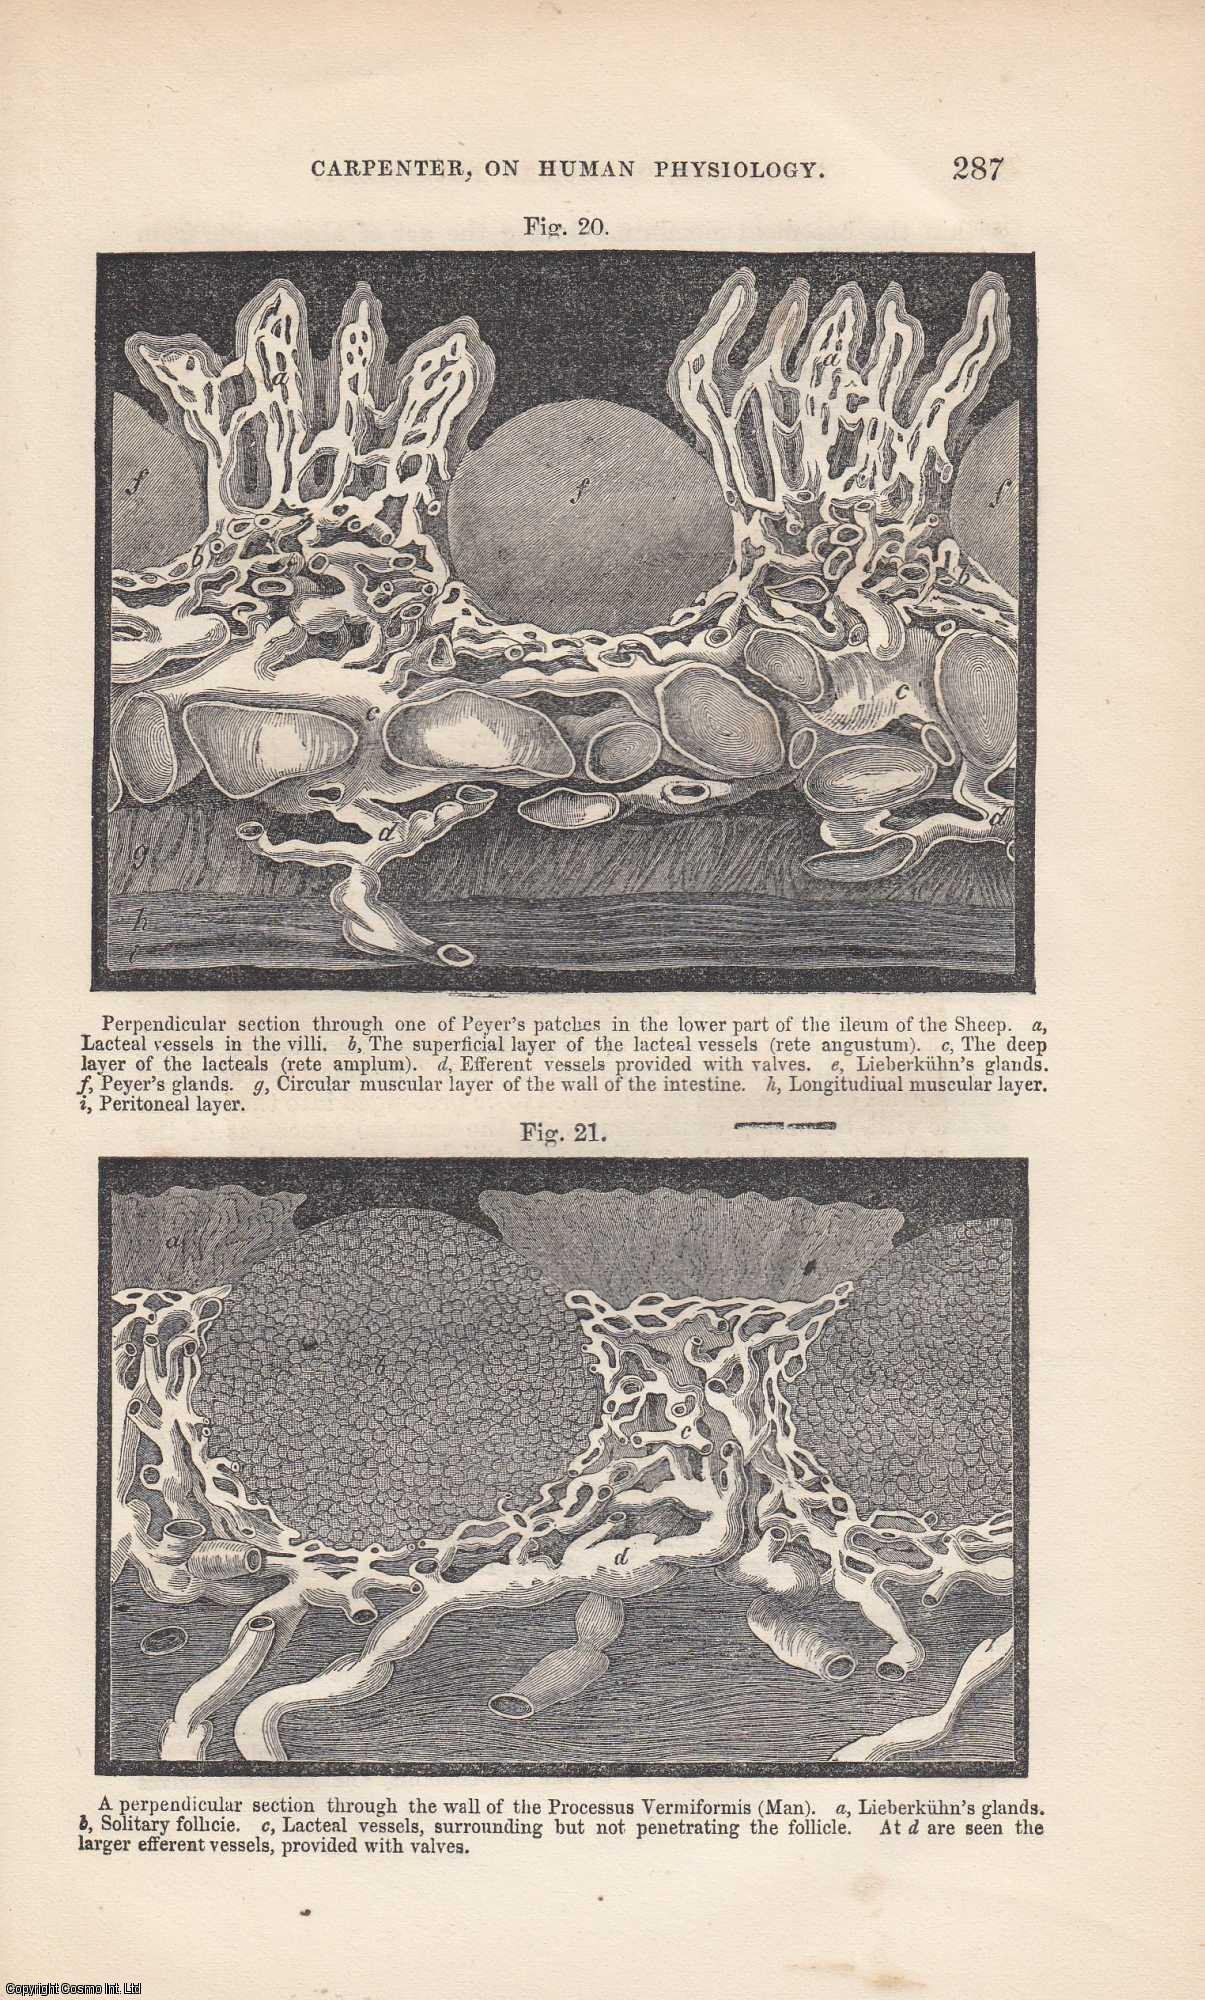 --- - Principles of Human Physiology, by William B. Carpenter. A Review. An original article from the Quarterly Journal of Microscopical Science 1864.